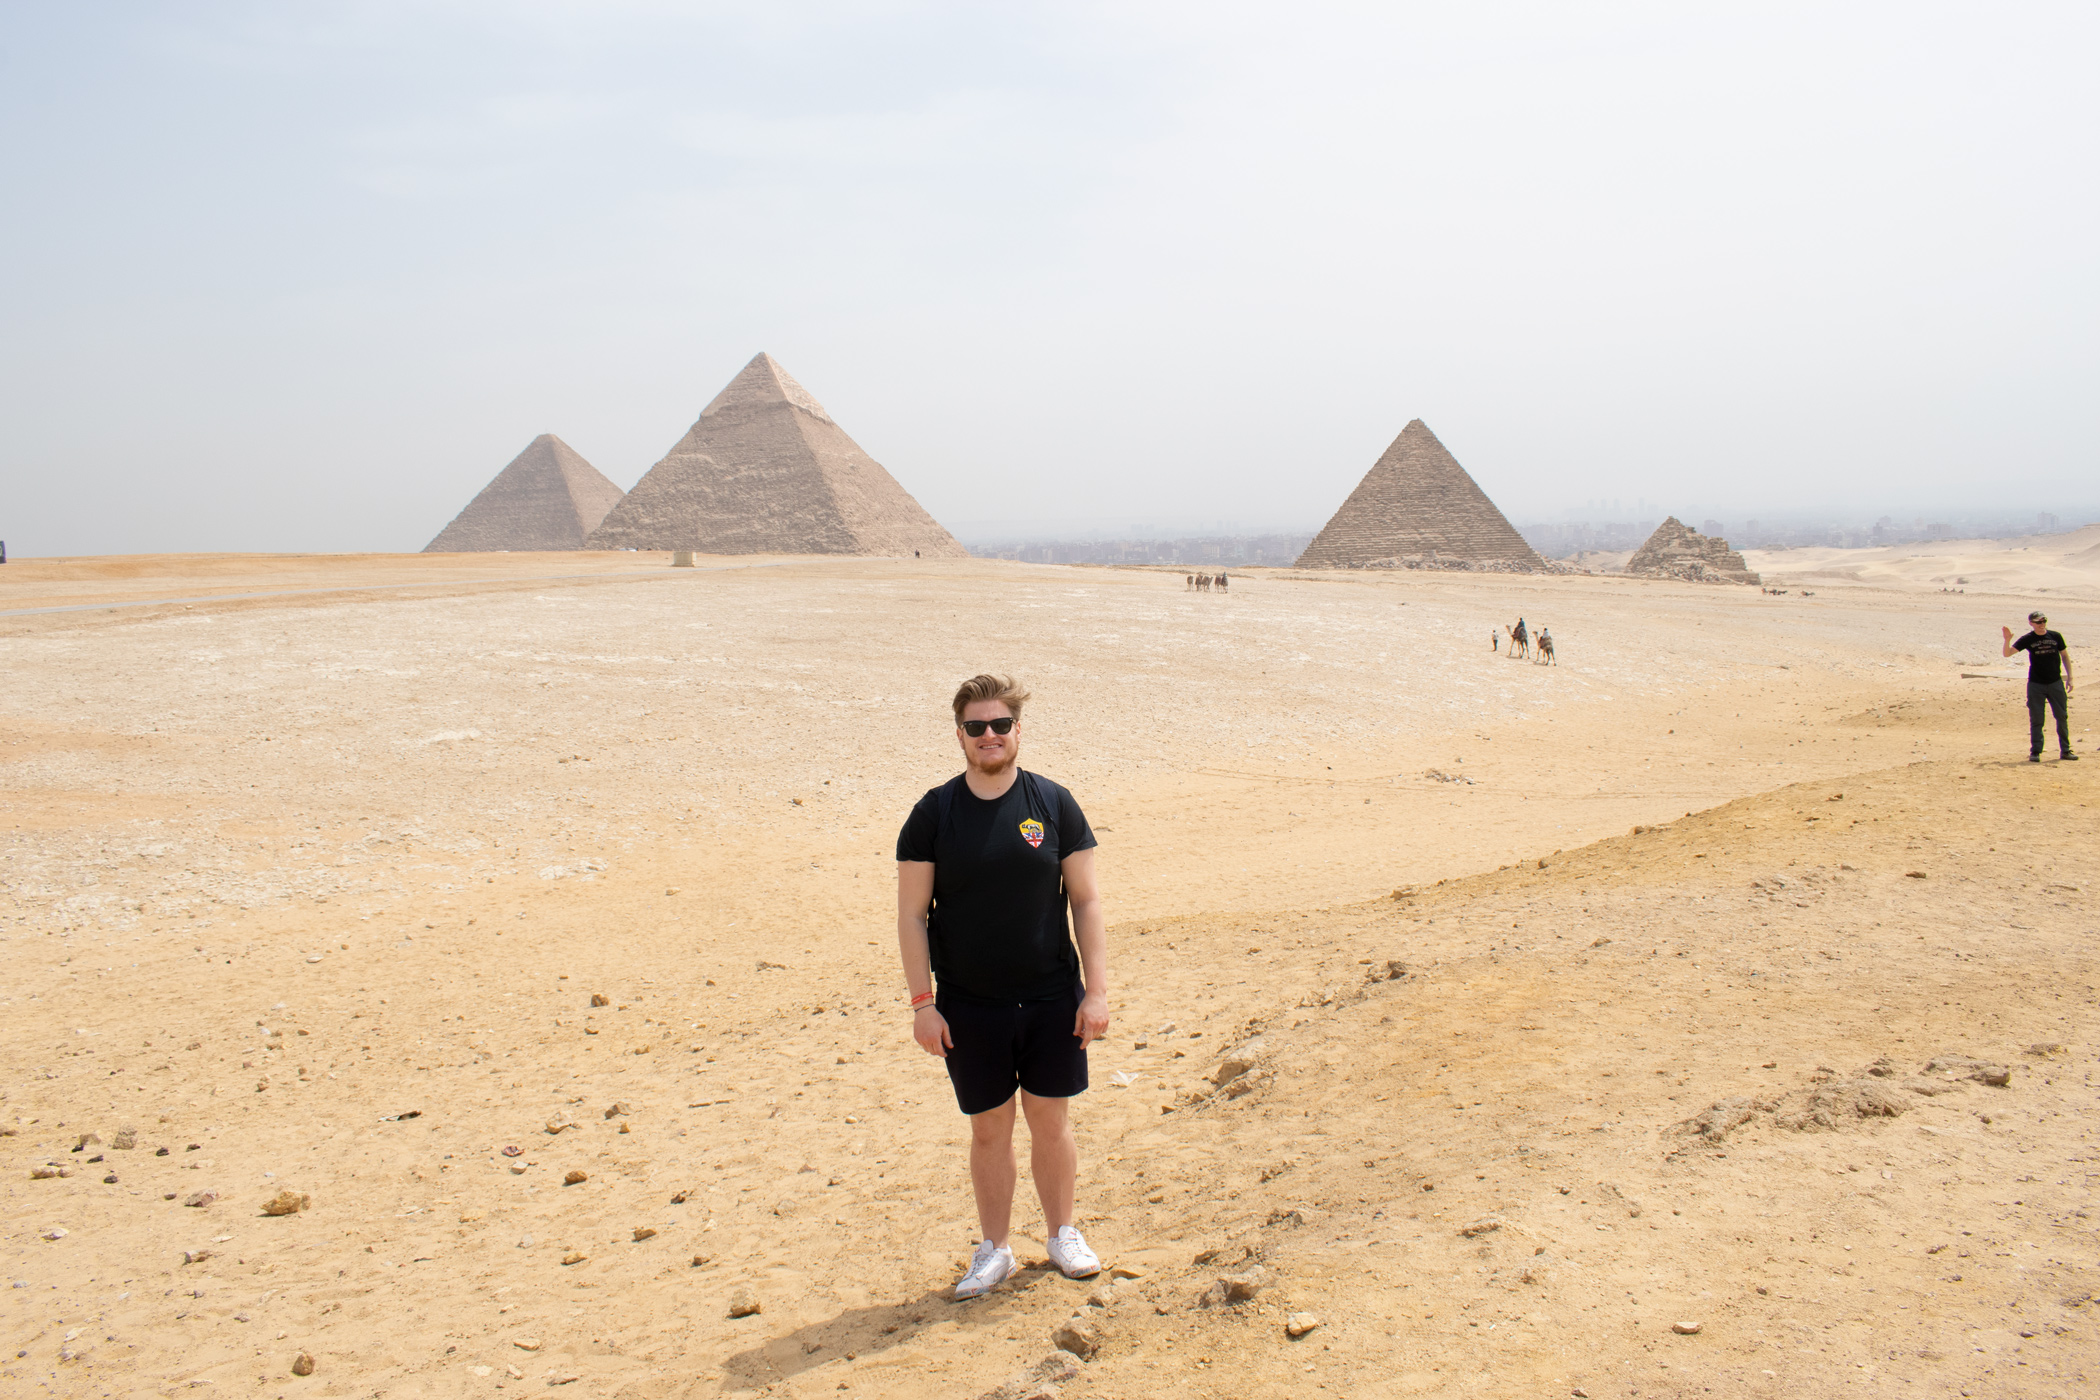 My trip to see the Pyramids was absolutely incredible, and something I'll never forget.